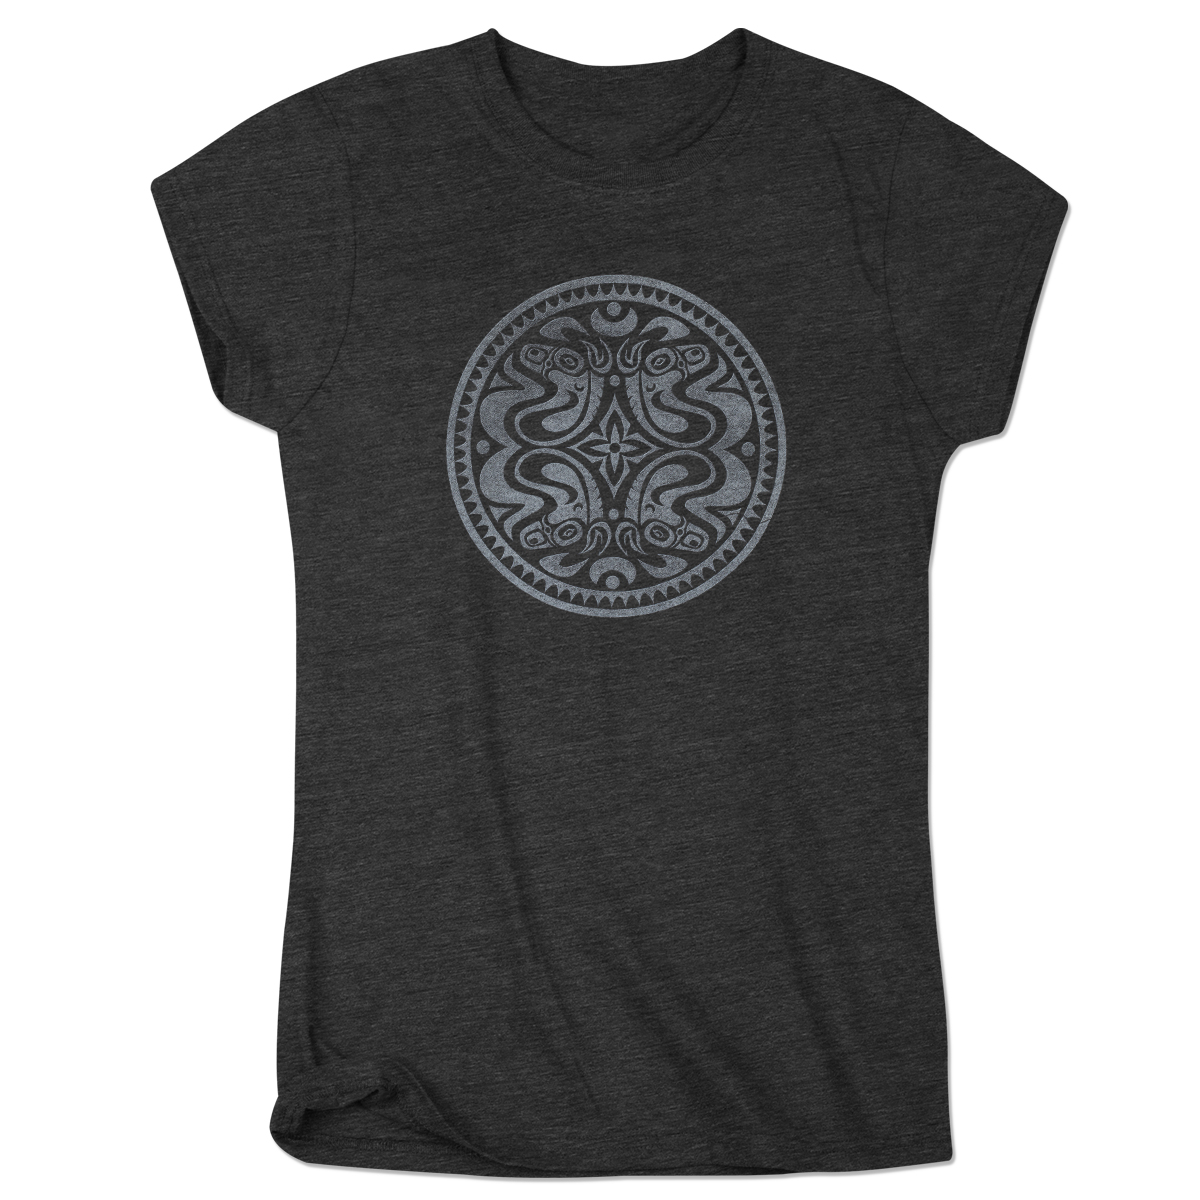 Gov't Mule Women's Dose Logo T-Shirt on Charcoal